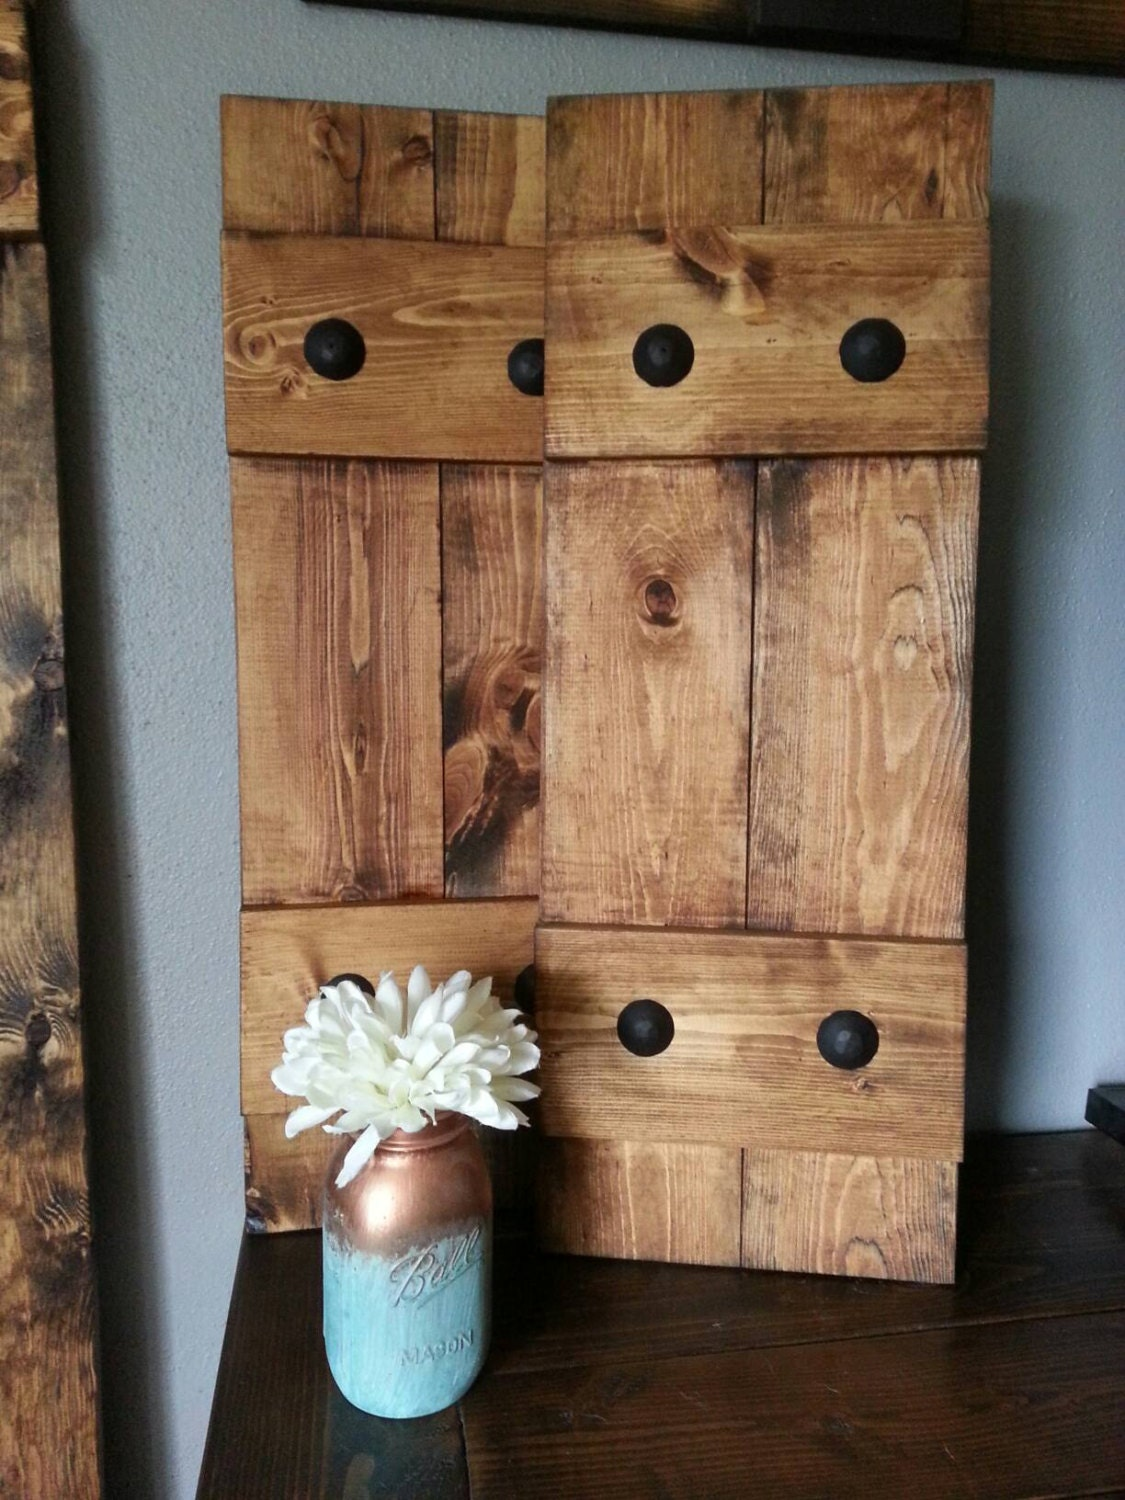 Decorative Wooden Blinds : Rustic wood shutters with clavos decorative